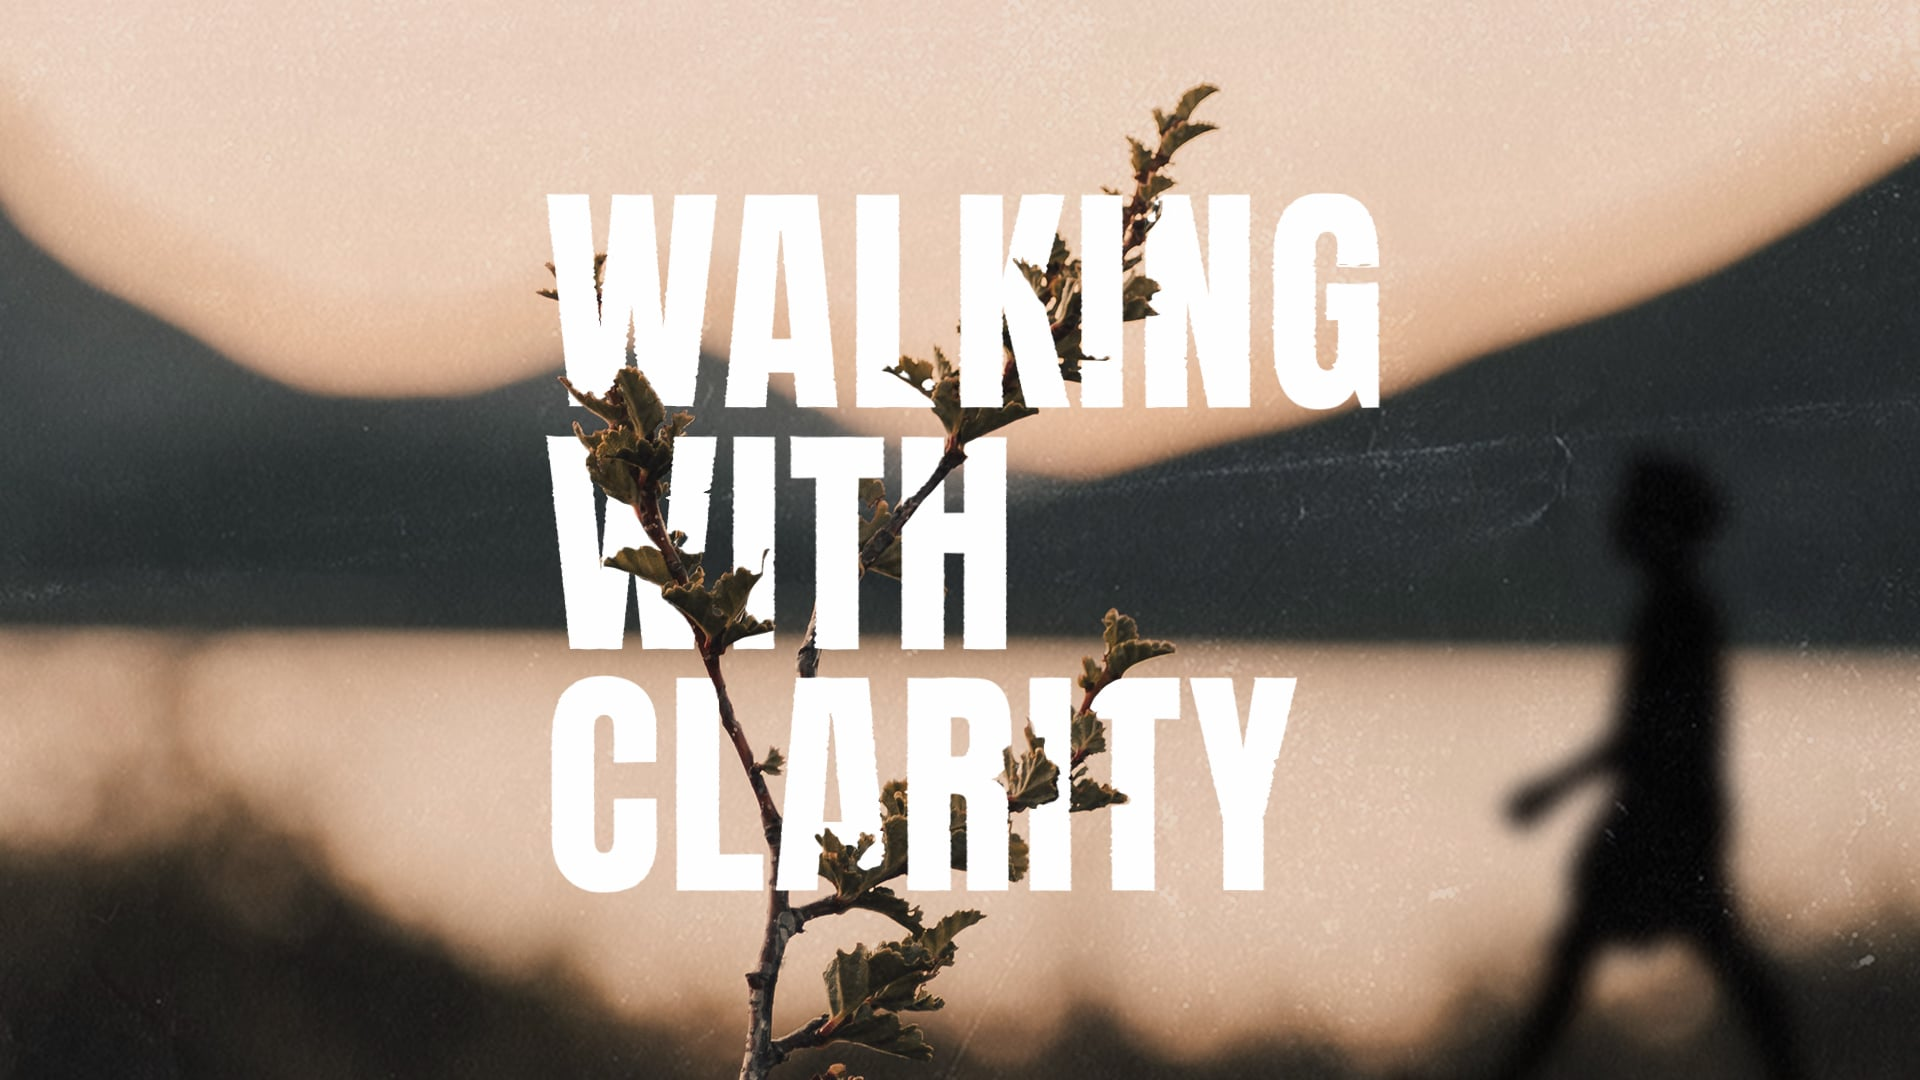 Walking with Clarity Pt. 3   8-15-21